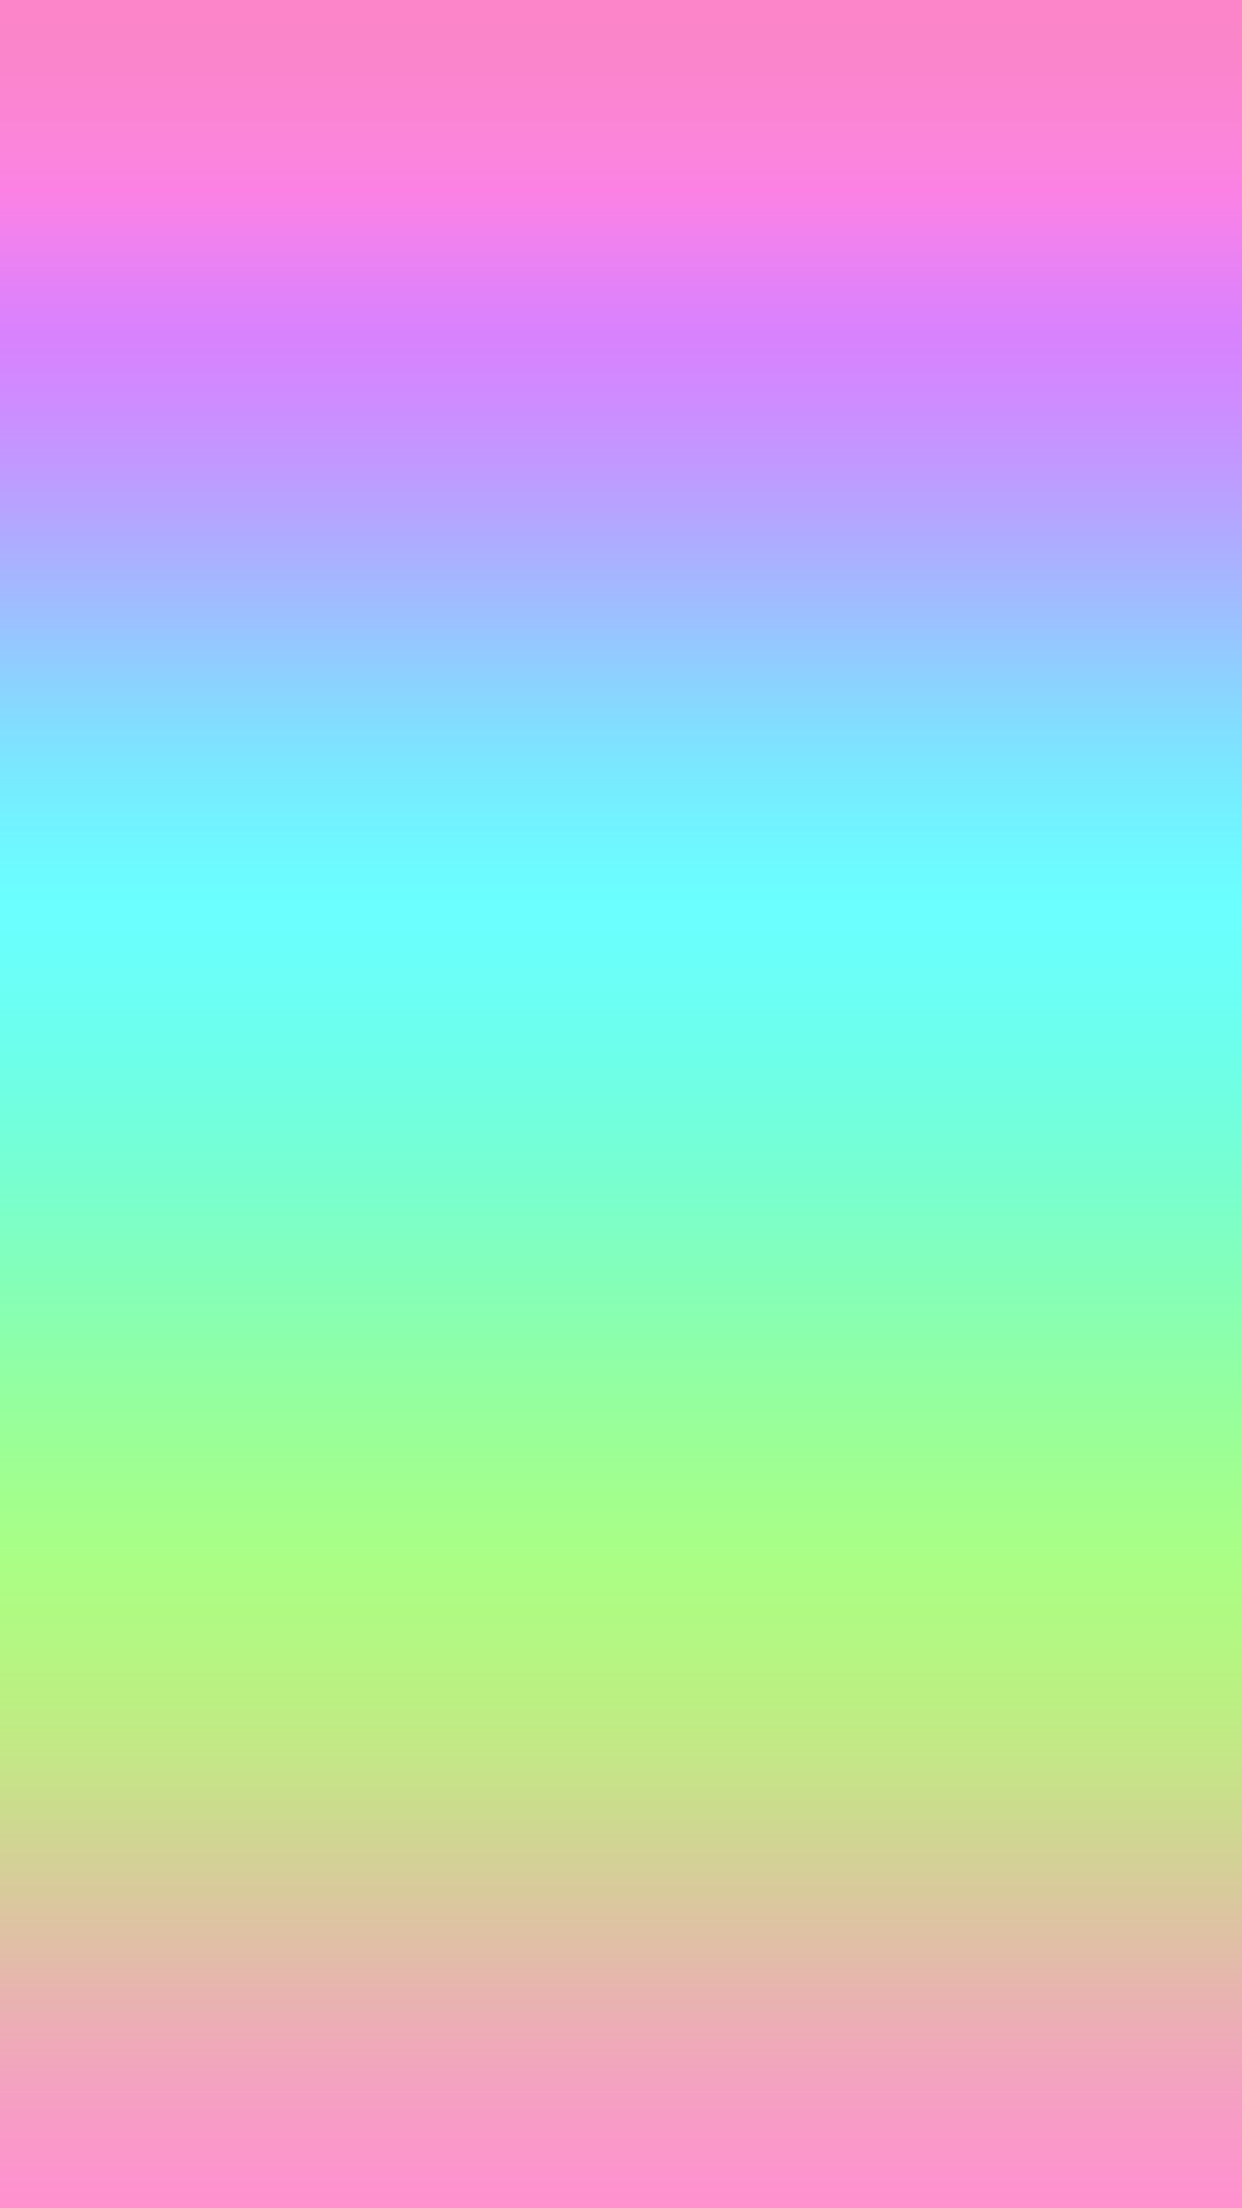 Rainbow Ombre iPhone 6/6s Wallpaper By Amy Raymond | iWallpapErs |  Pinterest | Ombre, Rainbows and Wallpaper